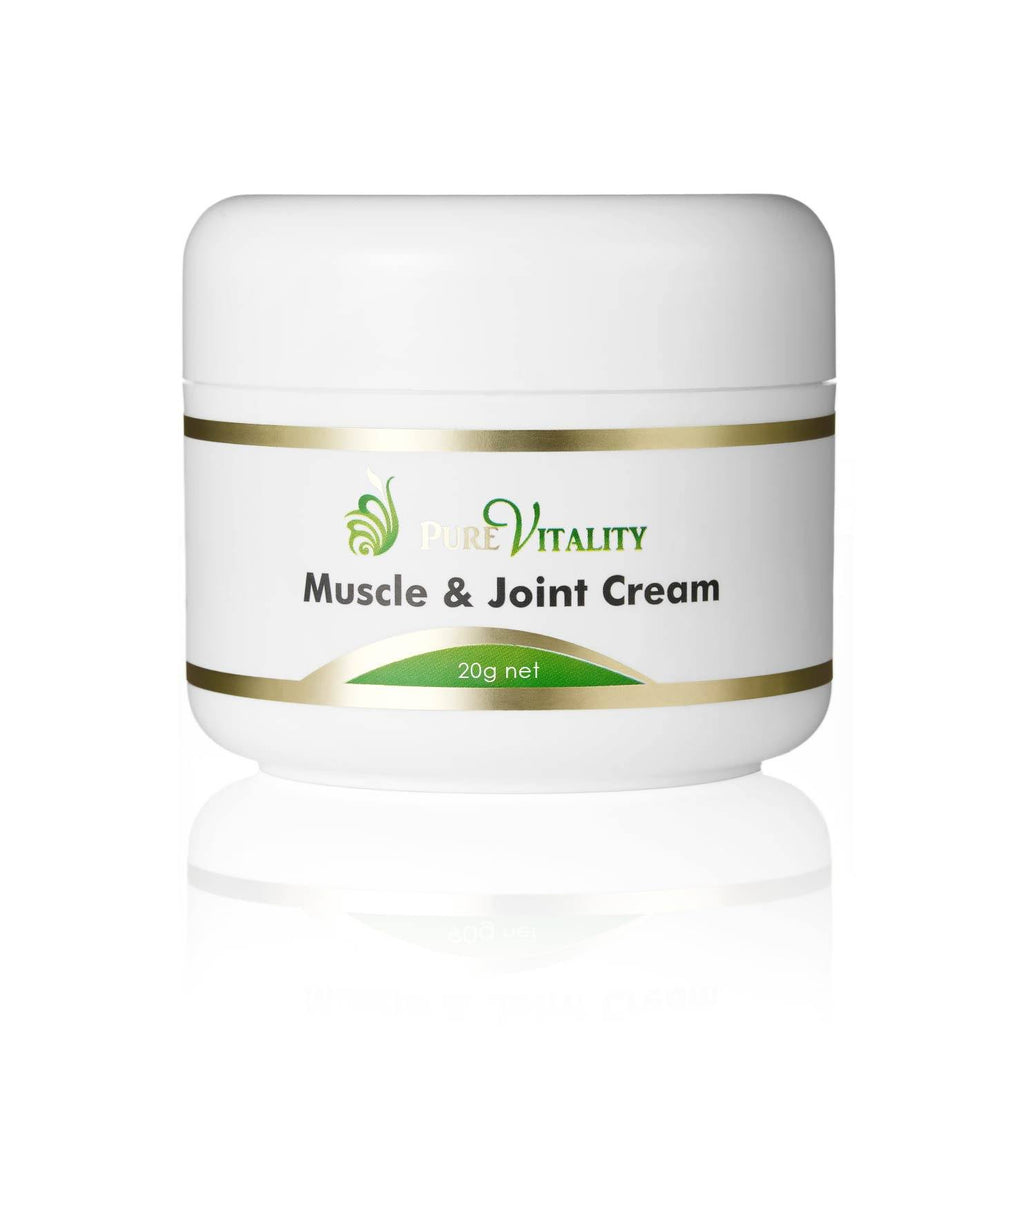 Muscle & Joint Cream 20g - Pure Vitality Limited